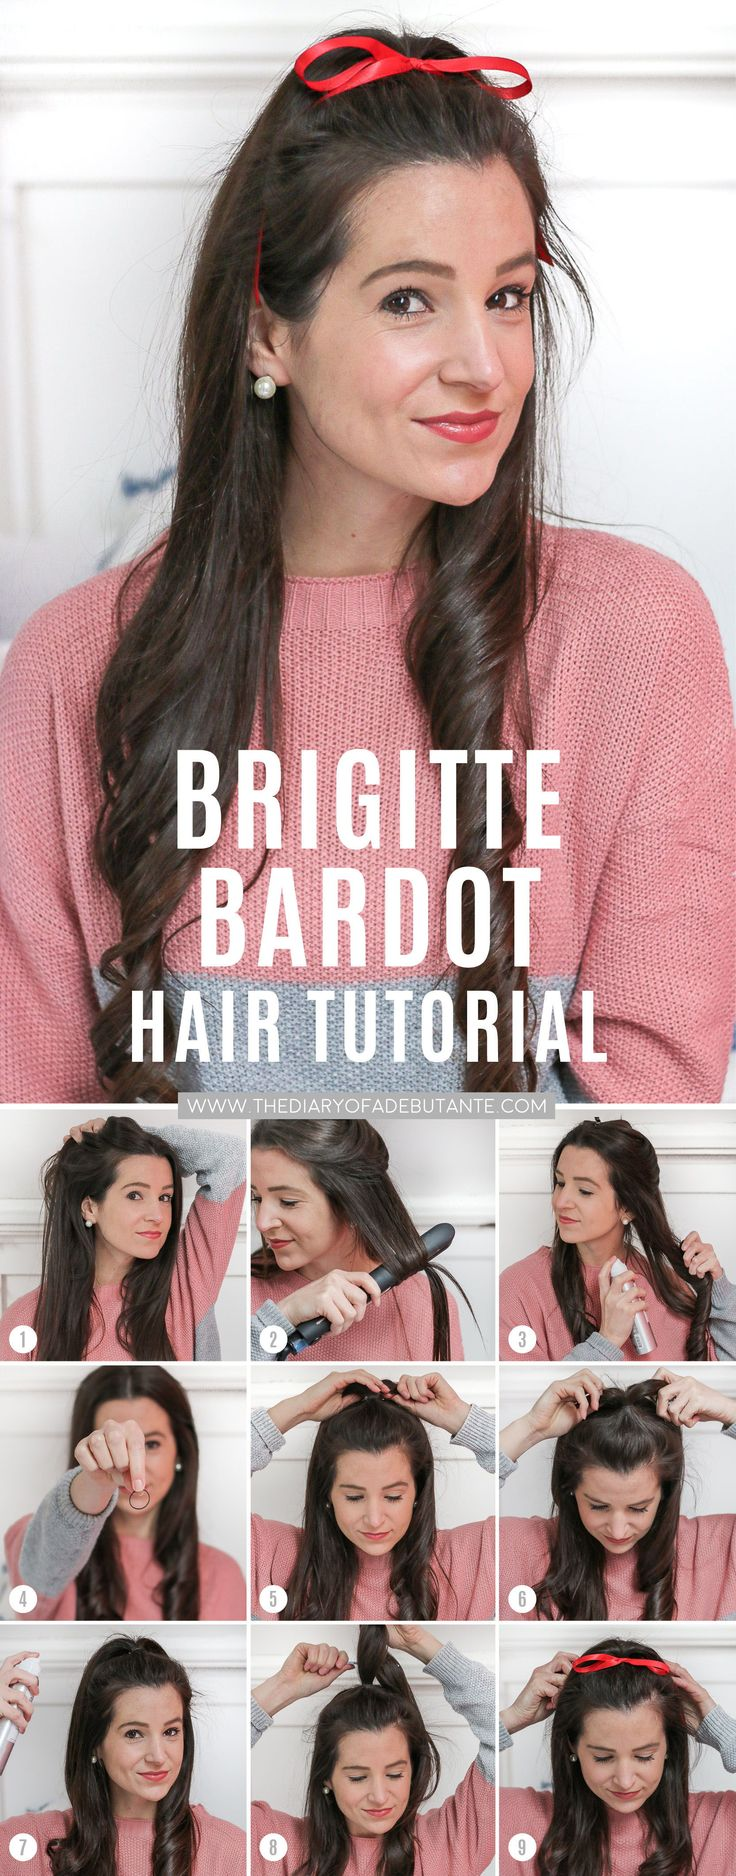 If you're looking for holiday hairstyles for long hair, try this fun Brigitte Ba...